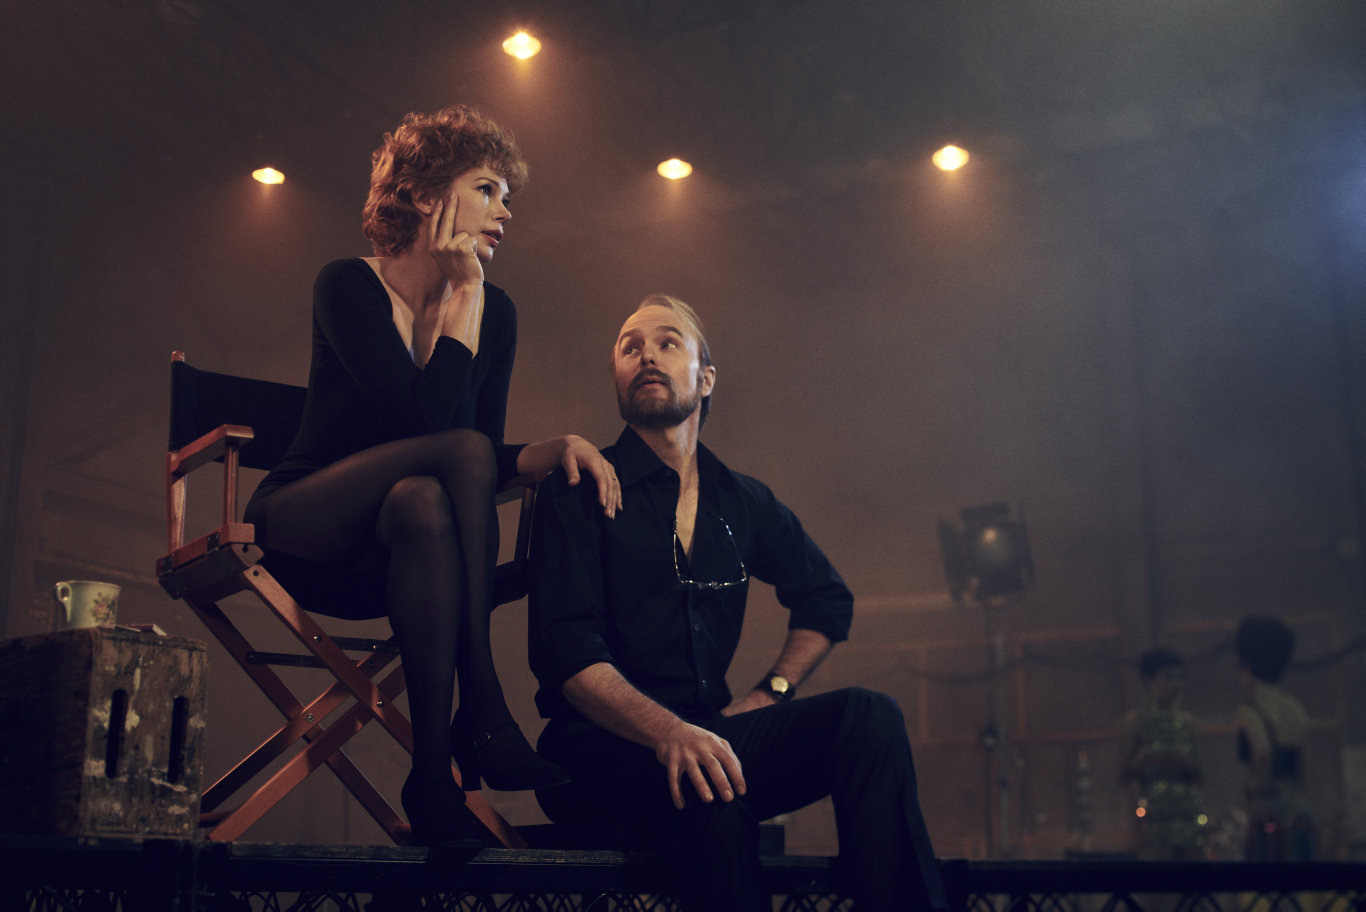 Michelle Williams and Sam Rockwell in a scene from the TV series Fosse/Verdon.